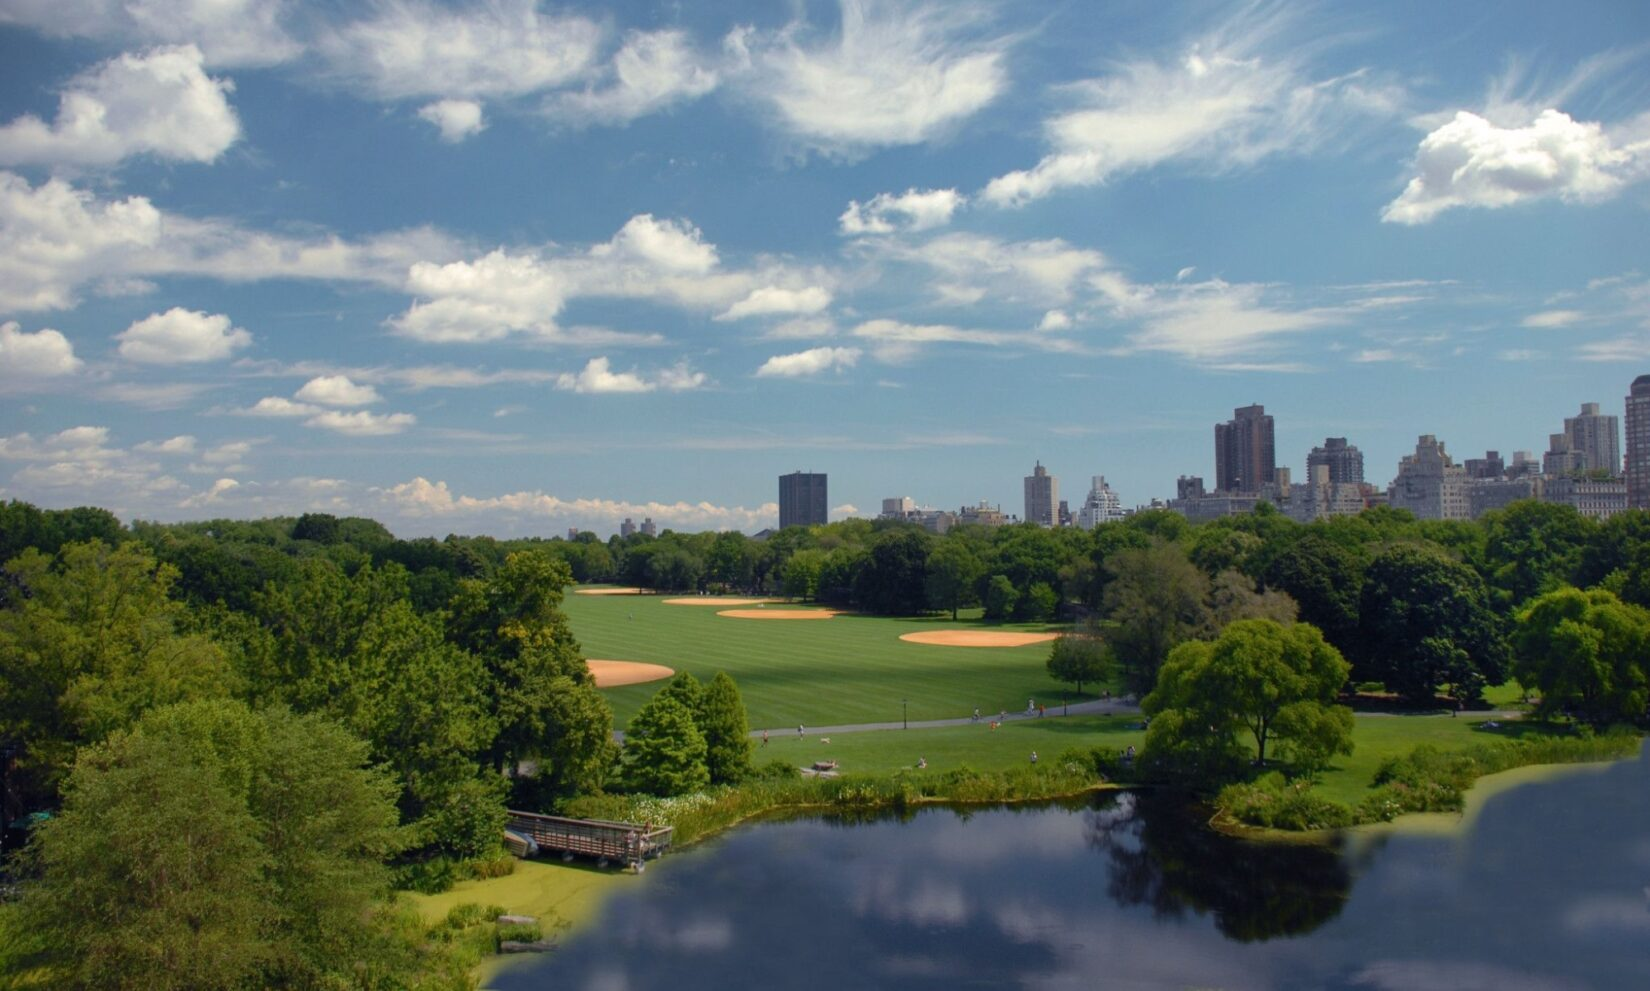 The Great Lawn seen from atop Belvedere Castle, with Turtle Pond in the foreground.